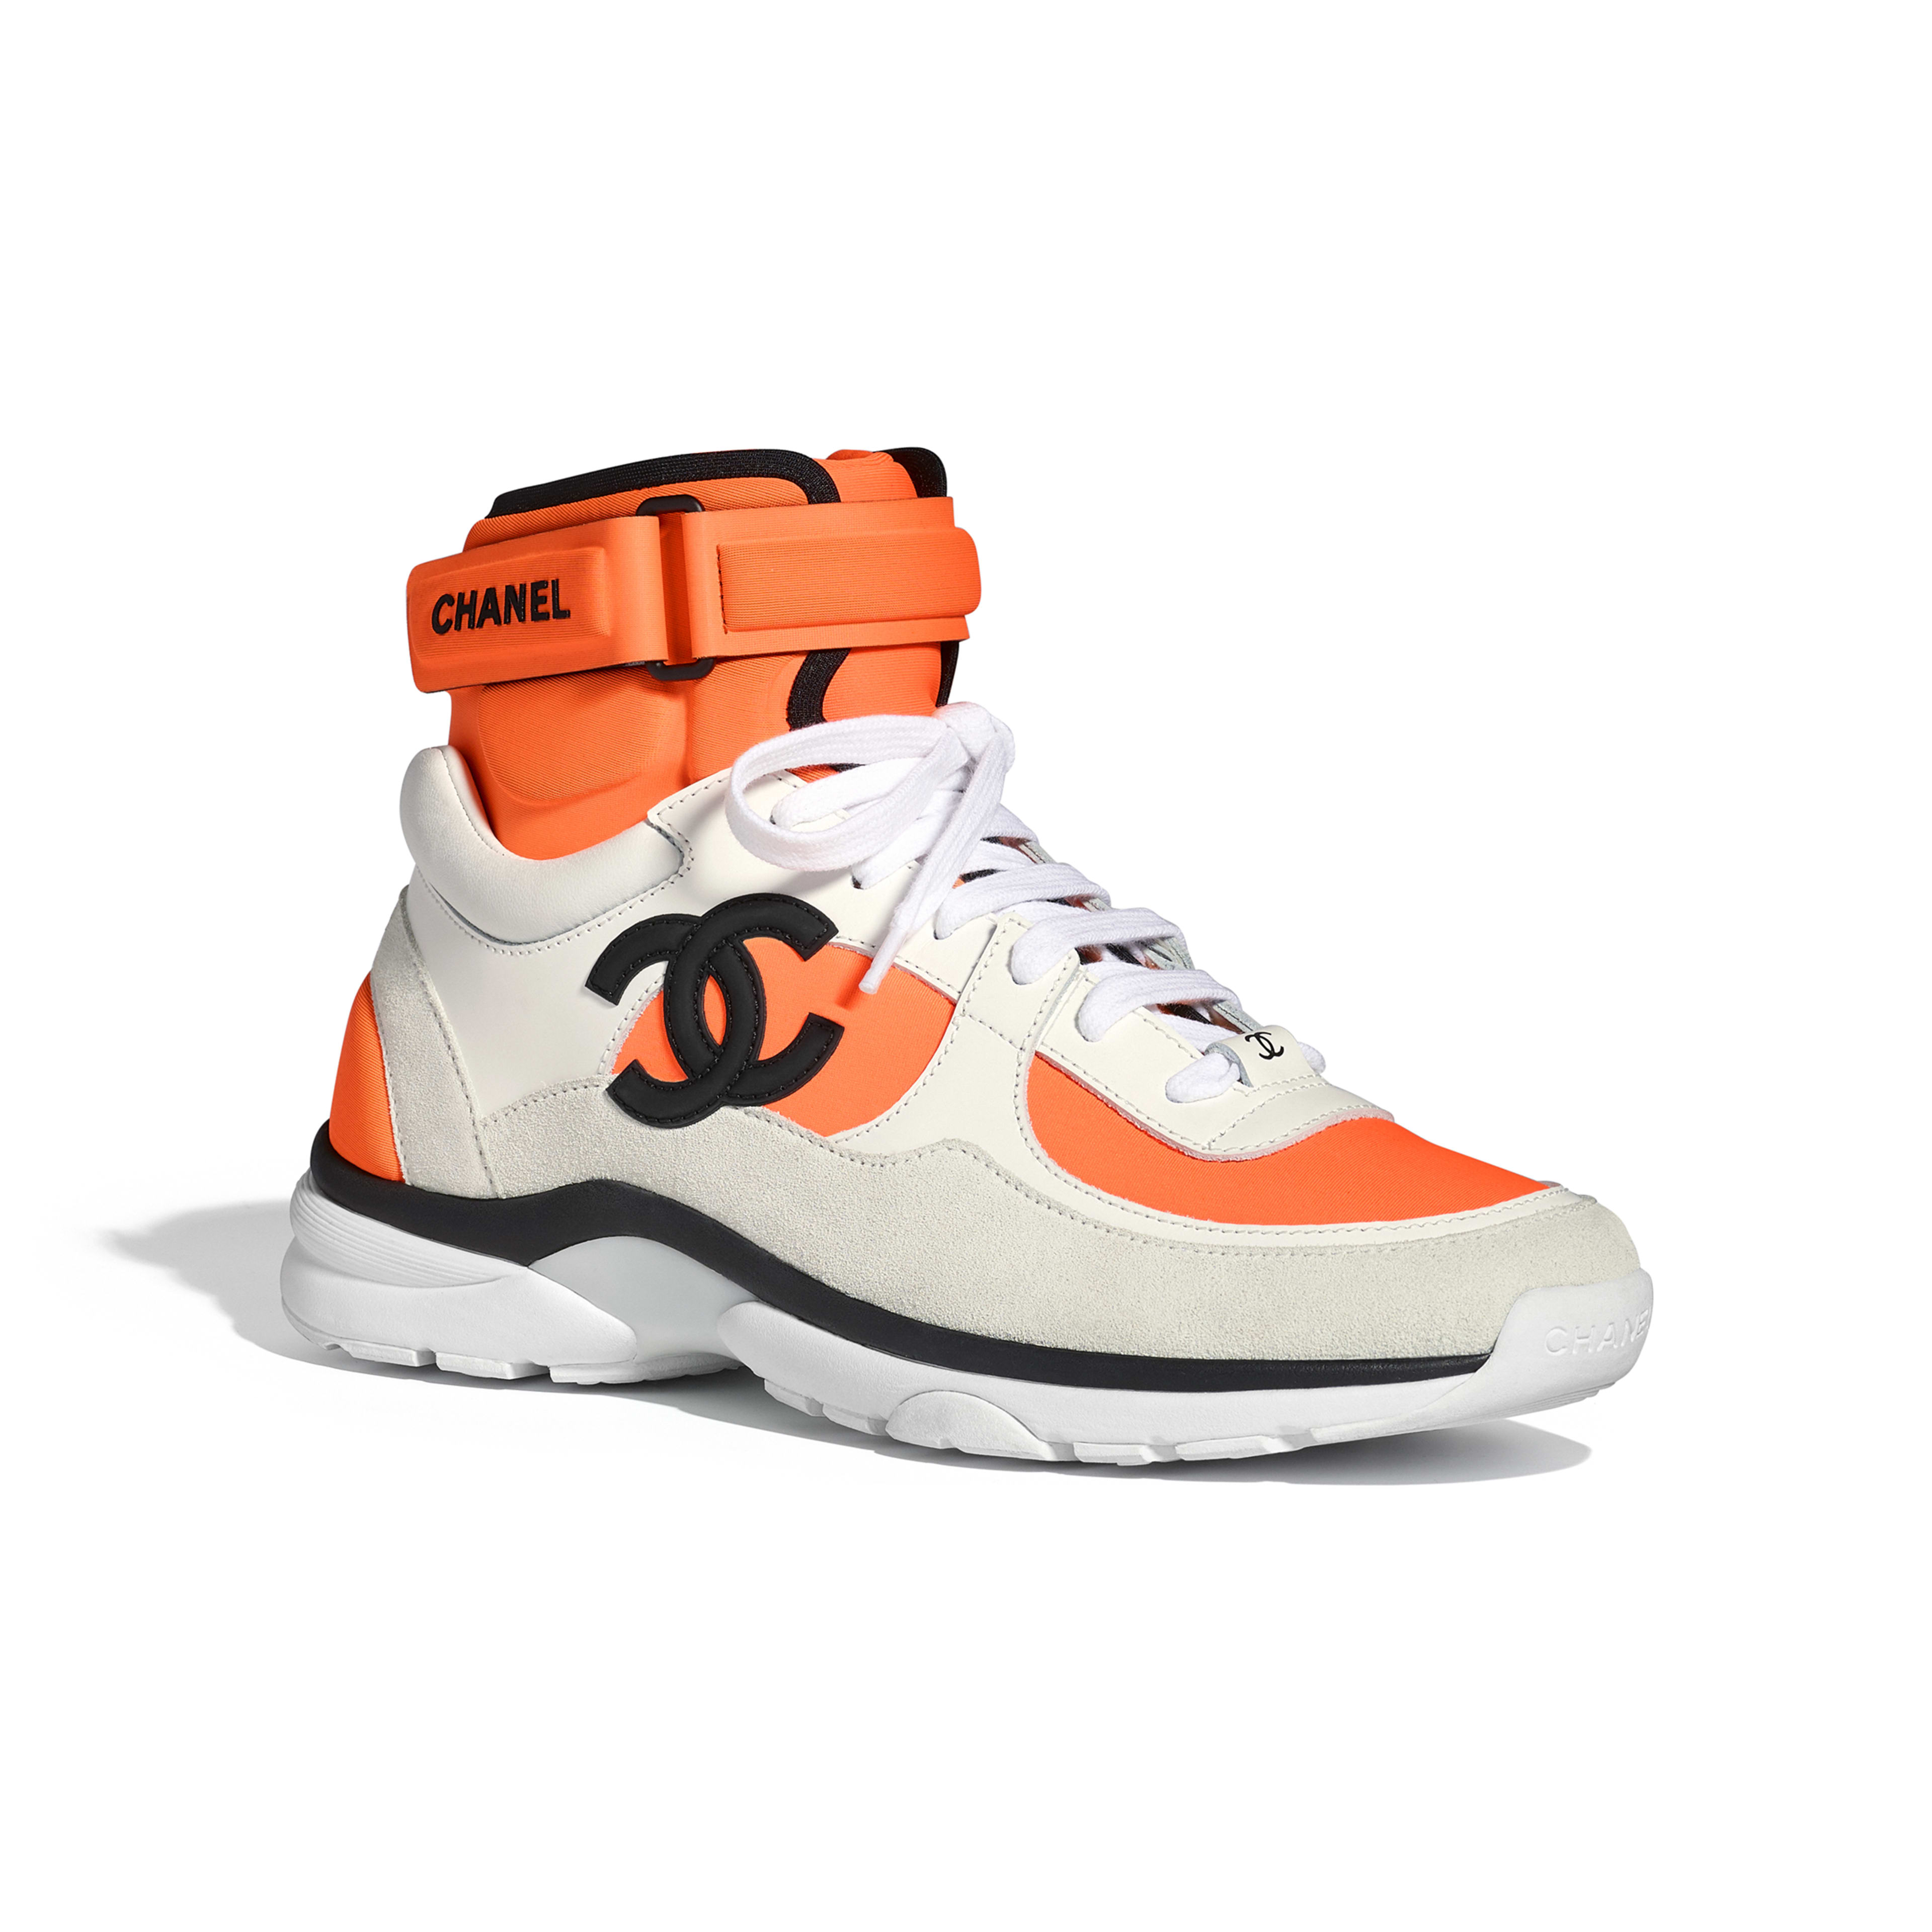 Sneakers Fabric, Lambskin & Suede Calfskin White & Orange -                                       view 2 - see full sized version